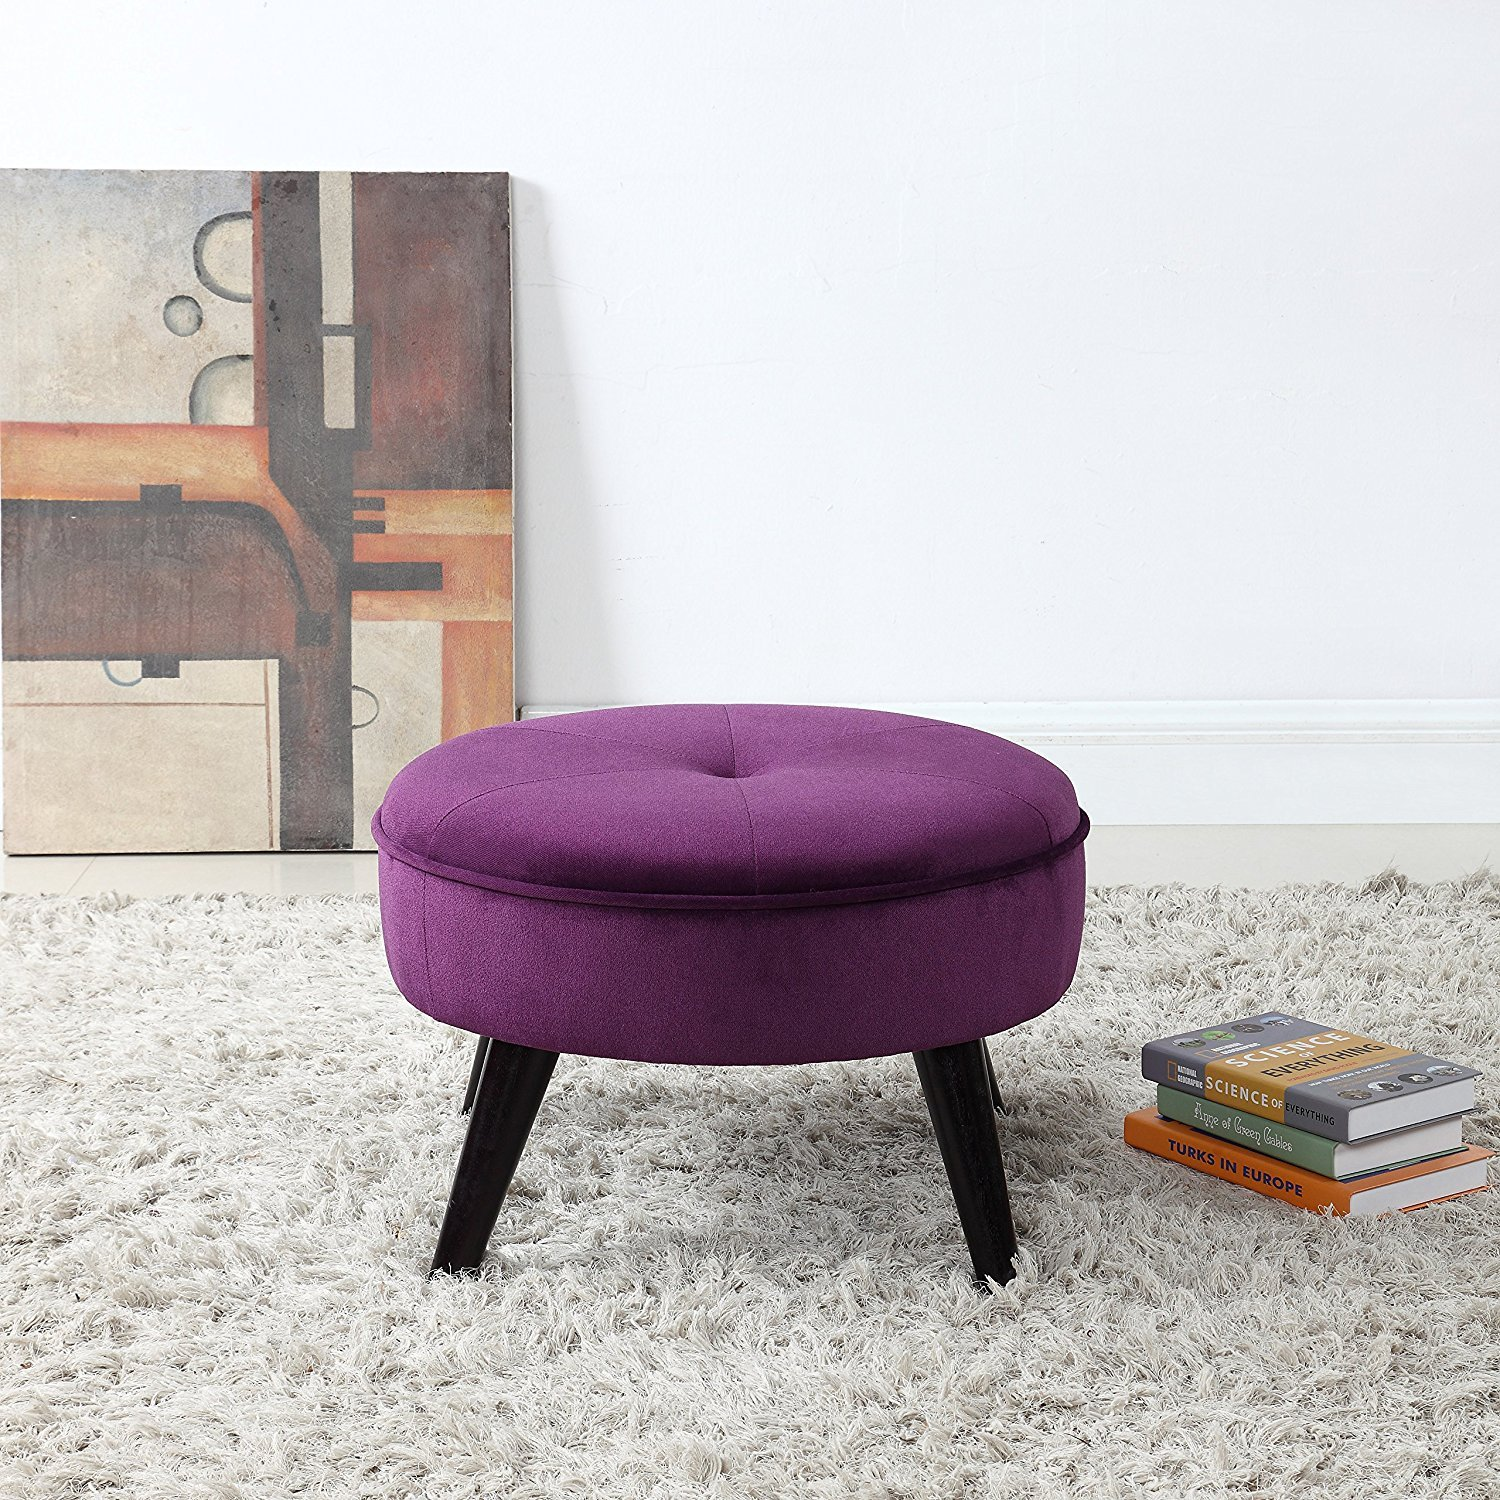 Prime Details About Classic Modern Tufted Large Velvet Round Footrest Footstool Ottoman Purple Gmtry Best Dining Table And Chair Ideas Images Gmtryco